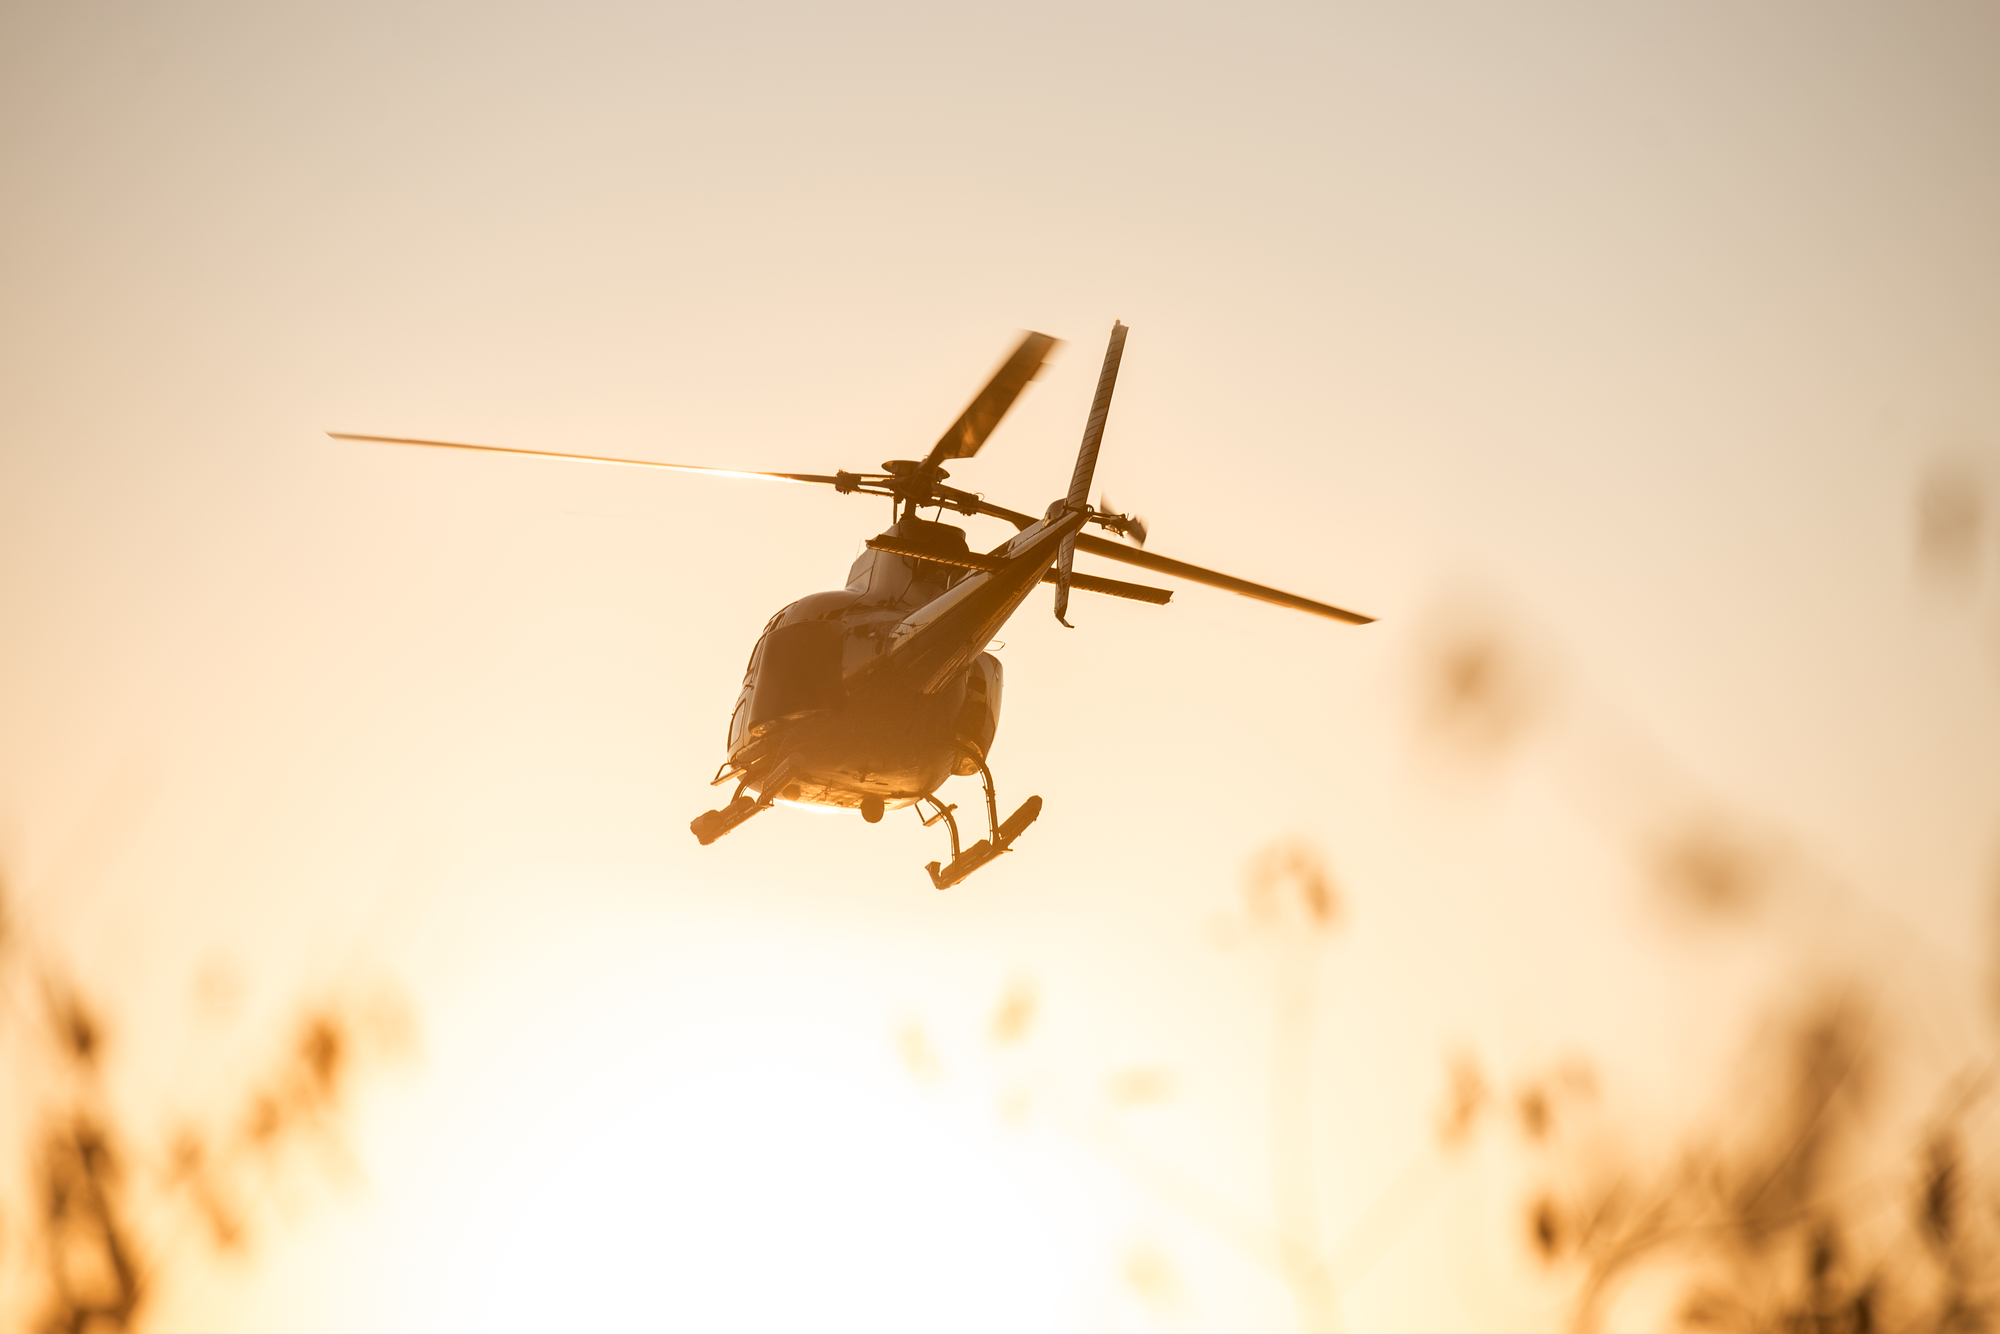 Passanger Helicopter flying in sunset sky